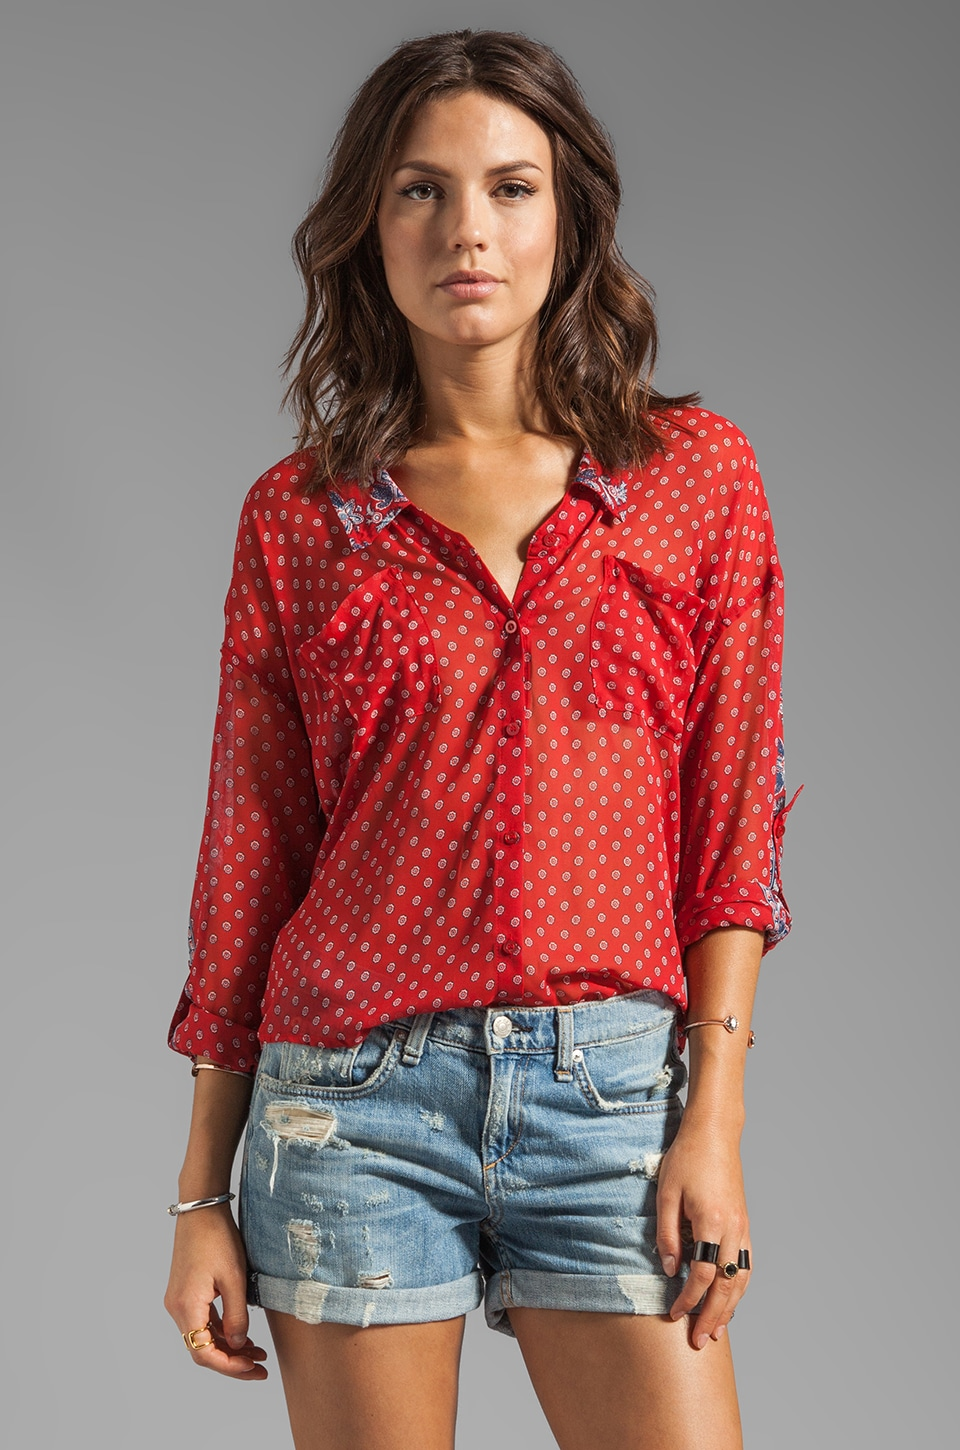 Free People Printed Easy Rider Button-down in Red Combo